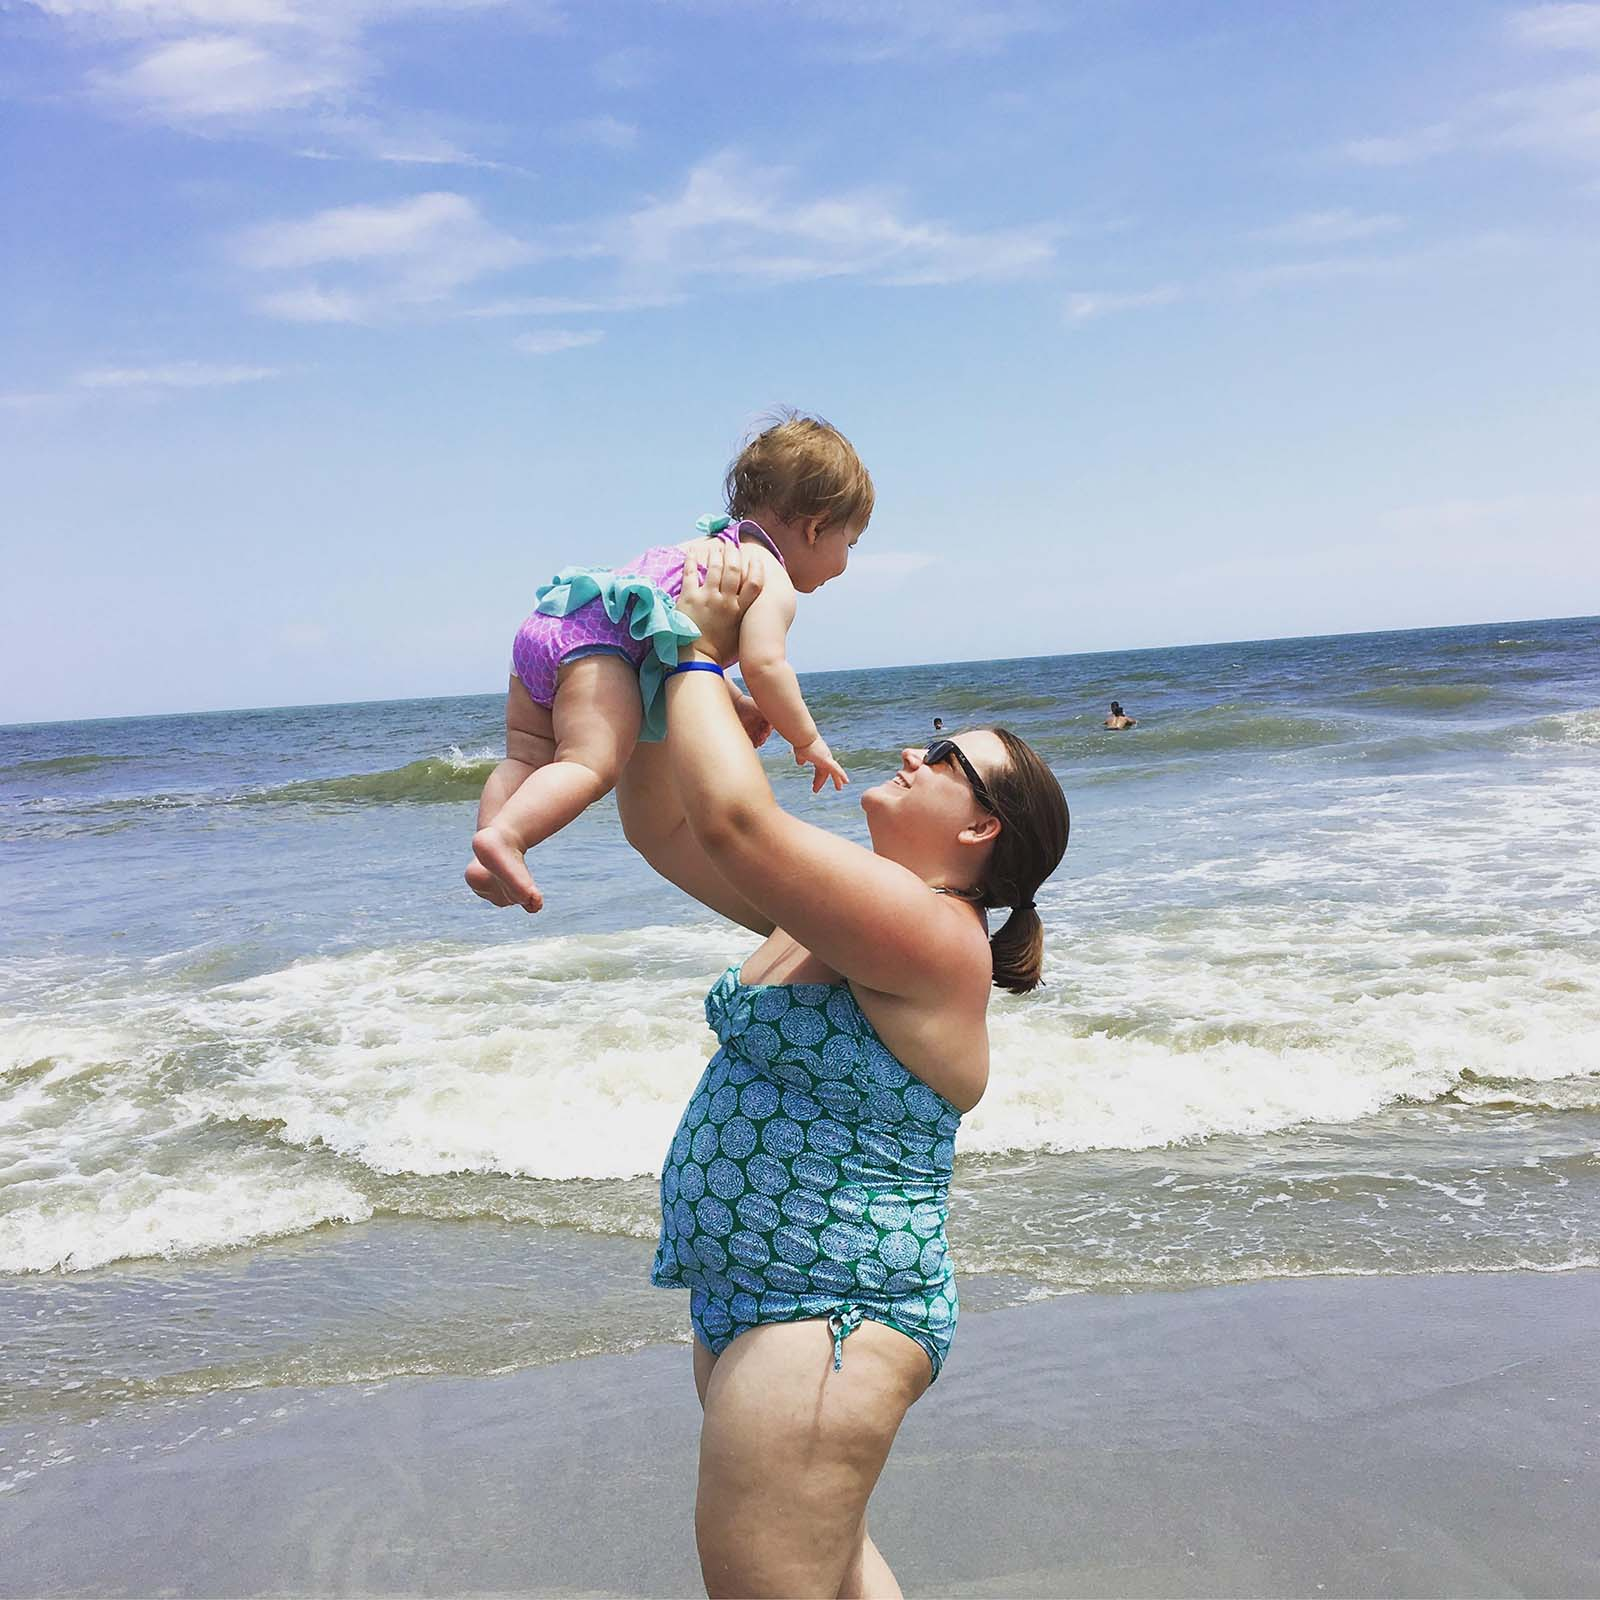 Mom holding up baby girl in air on the beach